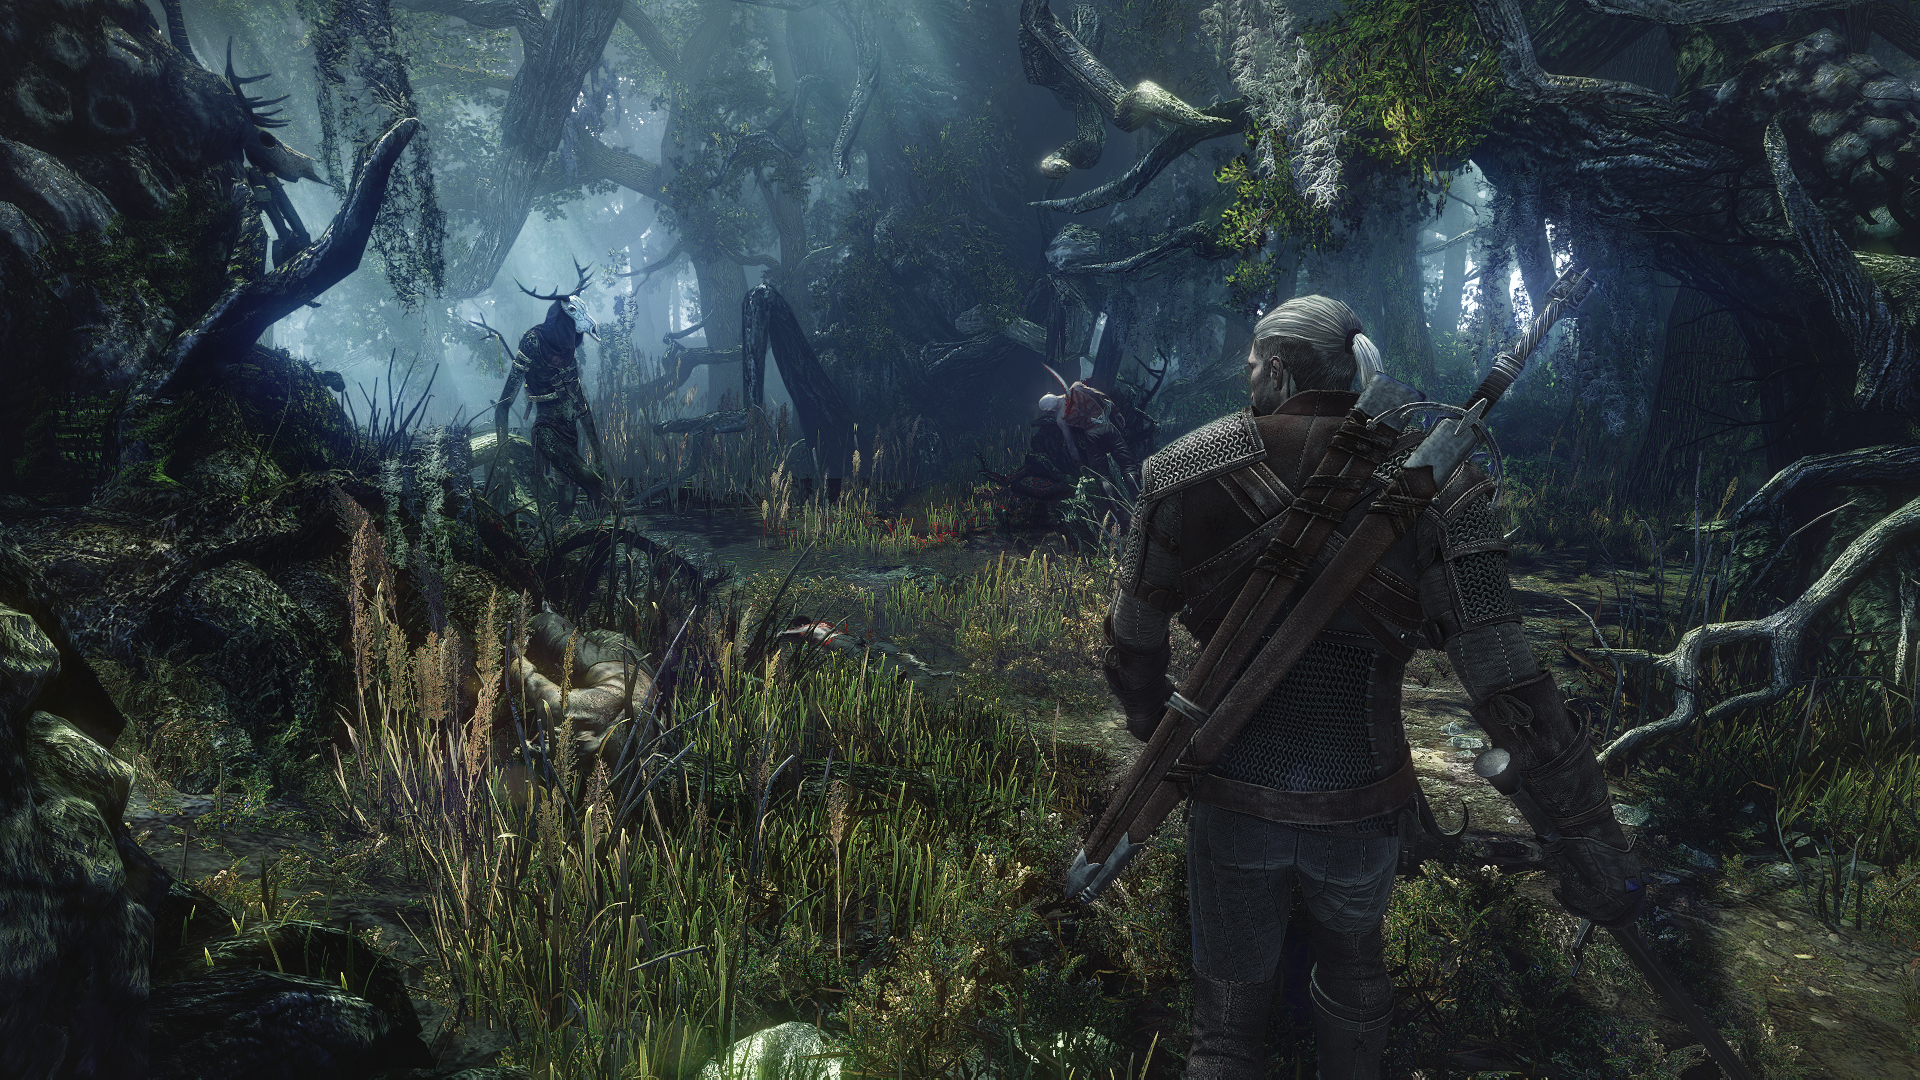 The few times you will die in the Witcher 3, it's due to a lacked of preparedness.